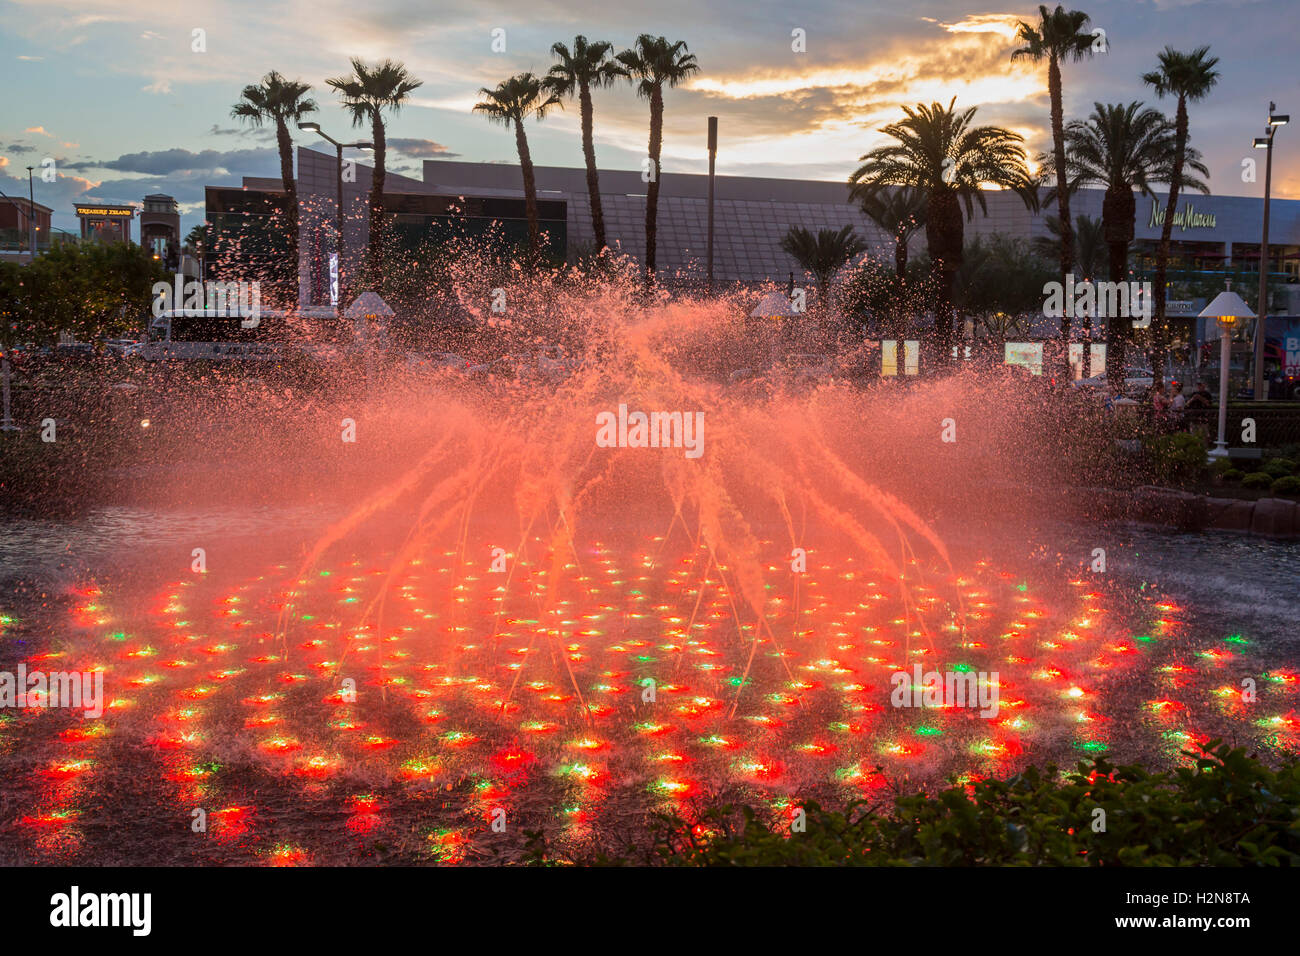 Las Vegas, Nevada - A fountain in front of the Wynn Hotel and Casino. - Stock Image